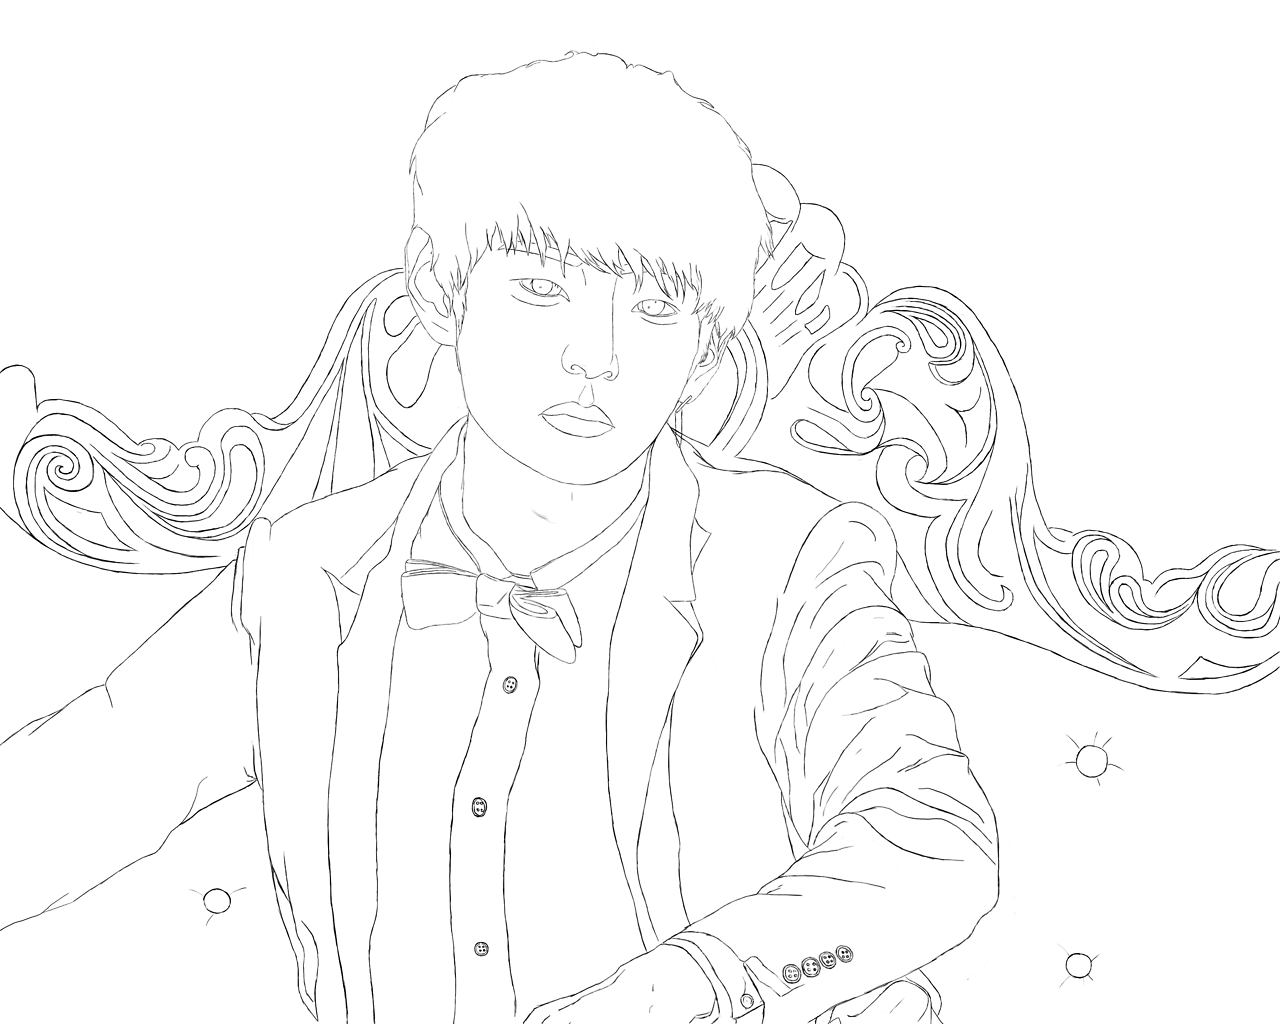 theuncreativeme — I'm finally able to post my two linearts